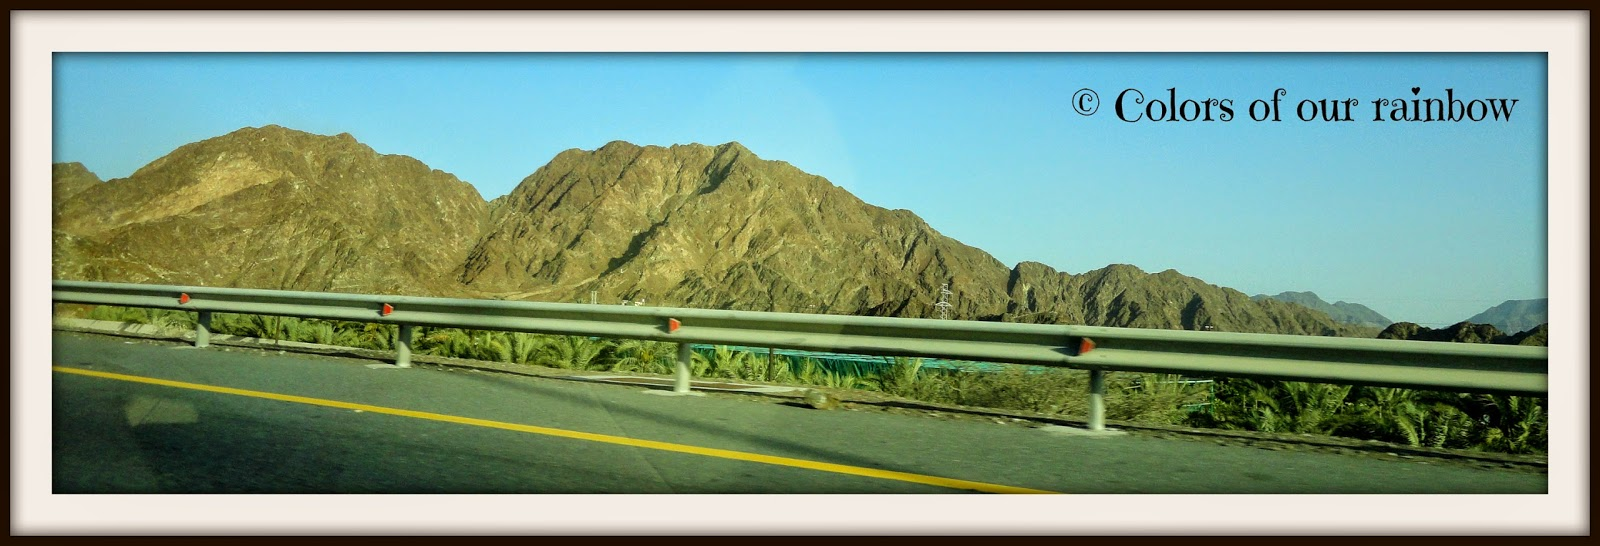 Hajjar mountains, The highway to khorfakkan @colorsofourrainbow.blogspot.ae